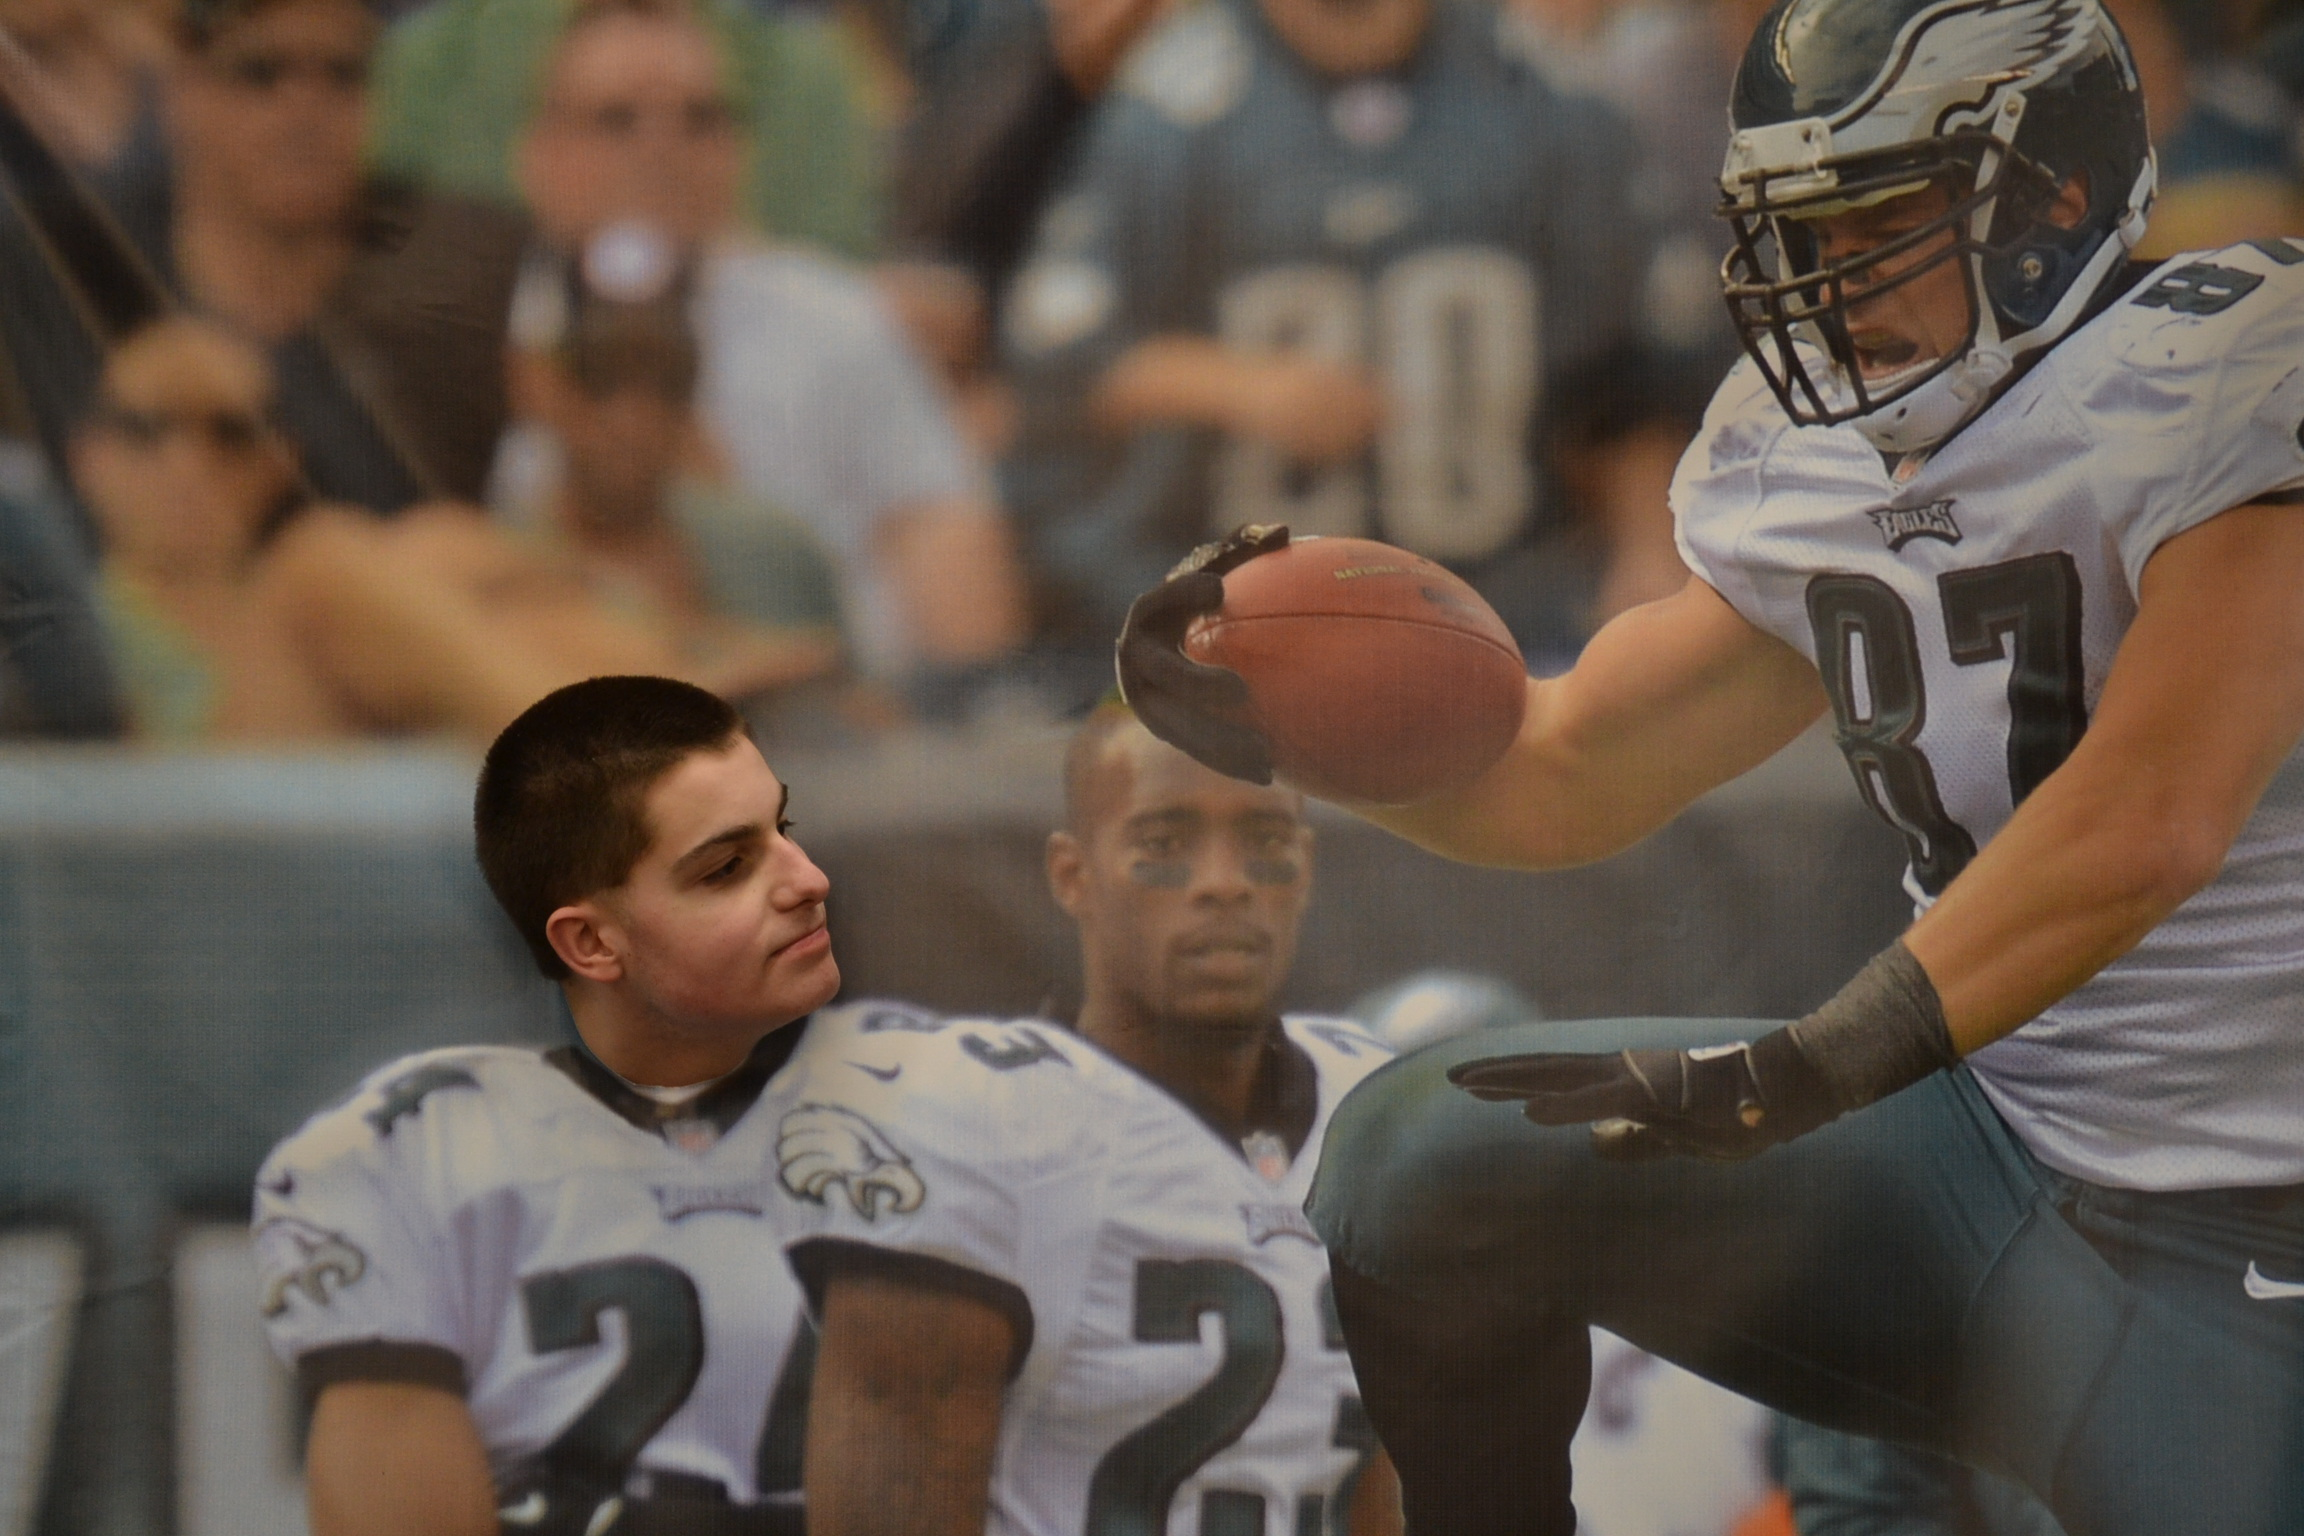 Photo Essay: Brent Celek from the Super Bowl Champion Eagles